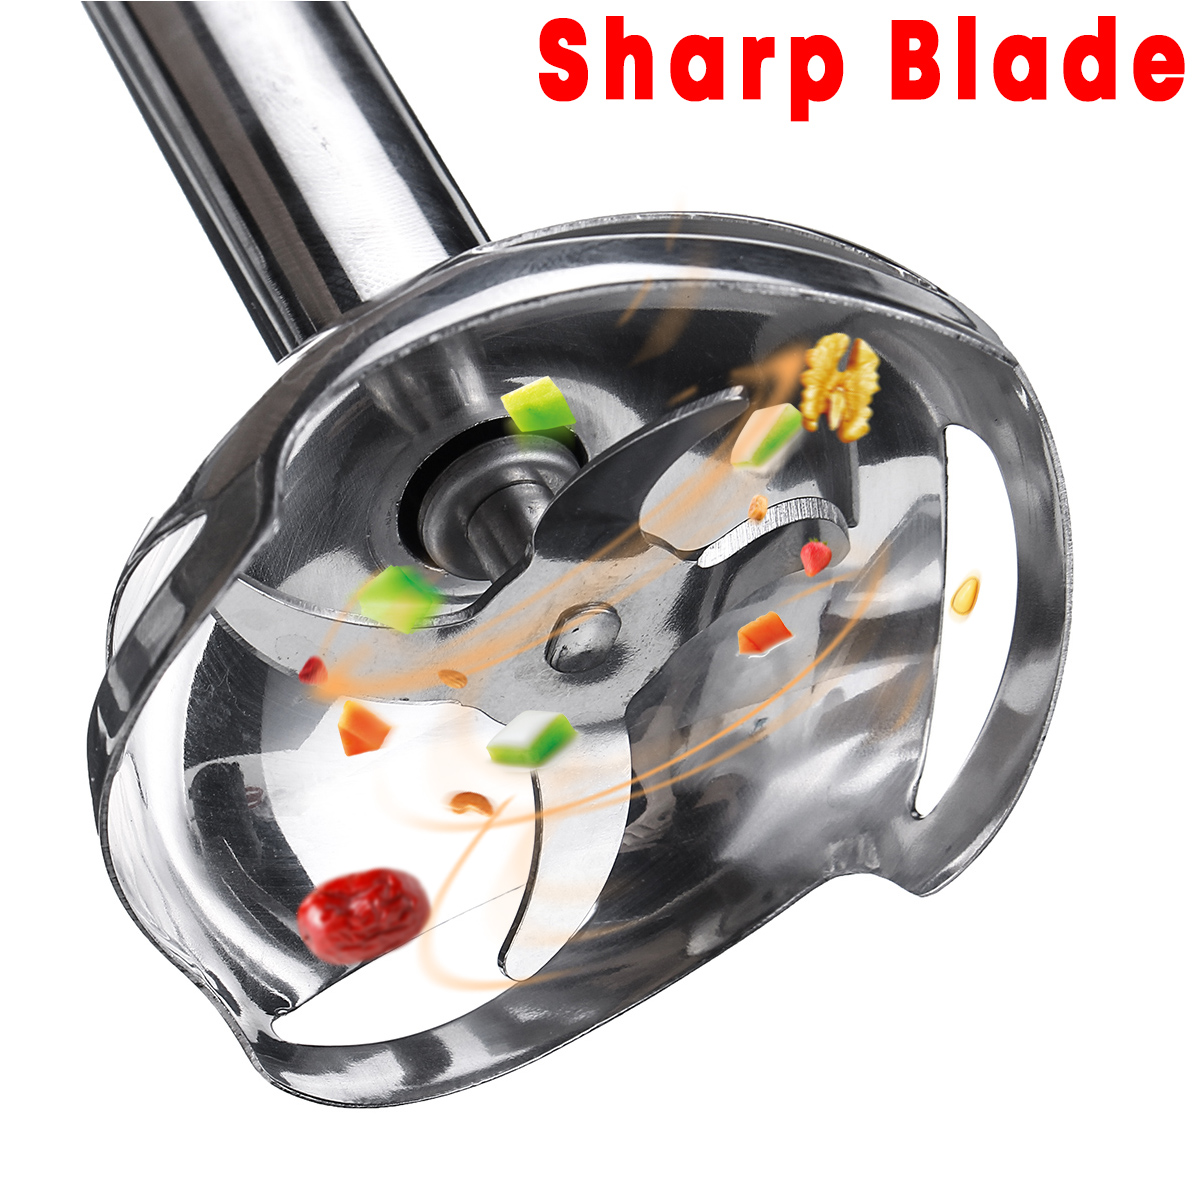 Sokany 3IN1 1000W Electric Stick Hand Blender Mixer Baby Food Processor Set Chopper Juicer